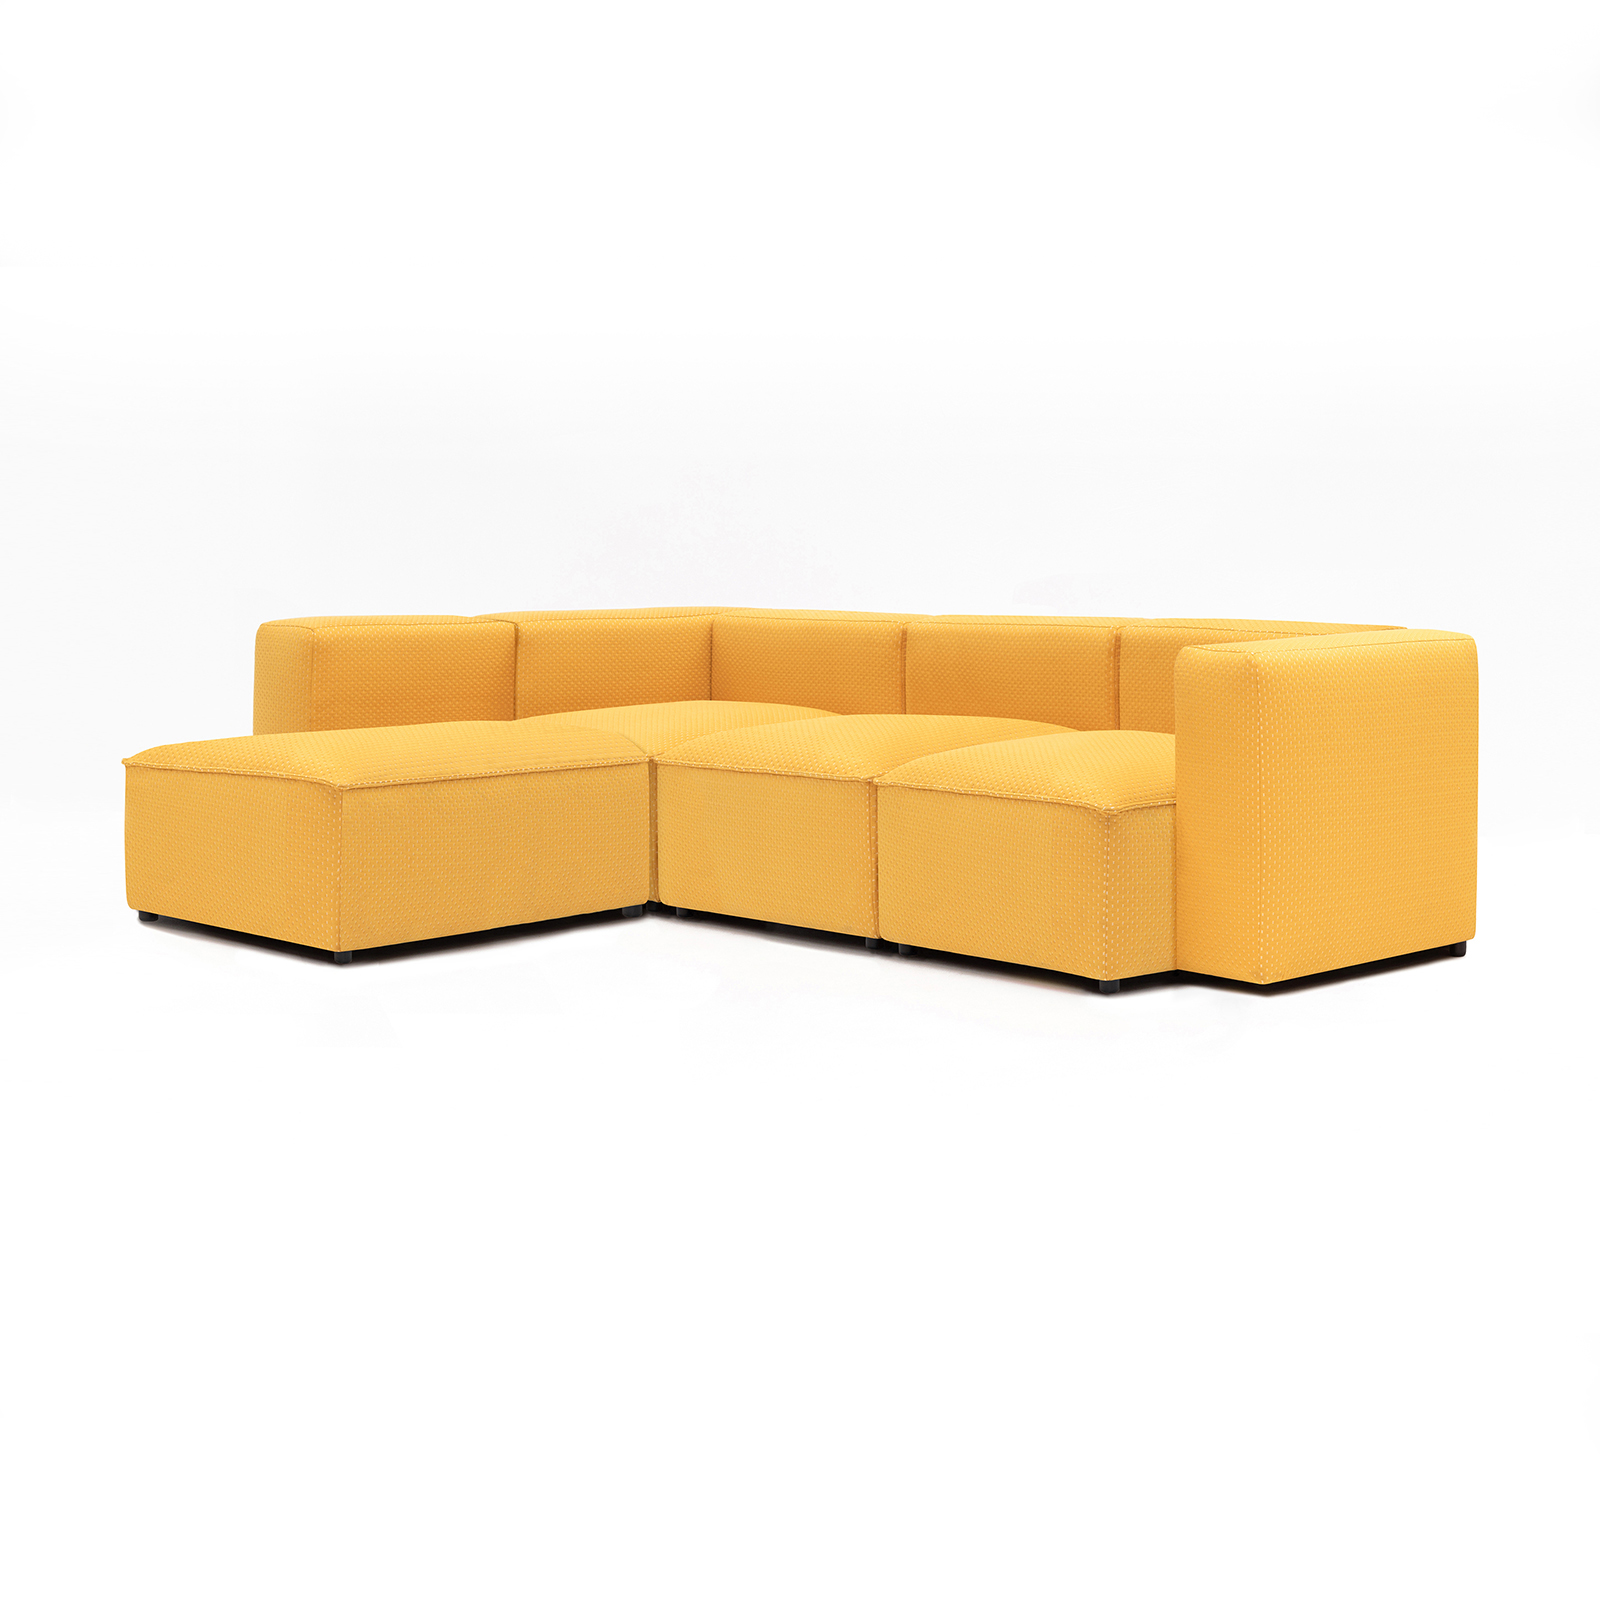 Permanent Future Easey Sofa 3 Seater Sectional Long Left Zoom Yellow Pf Sf Ea X3l L Zy 45º View